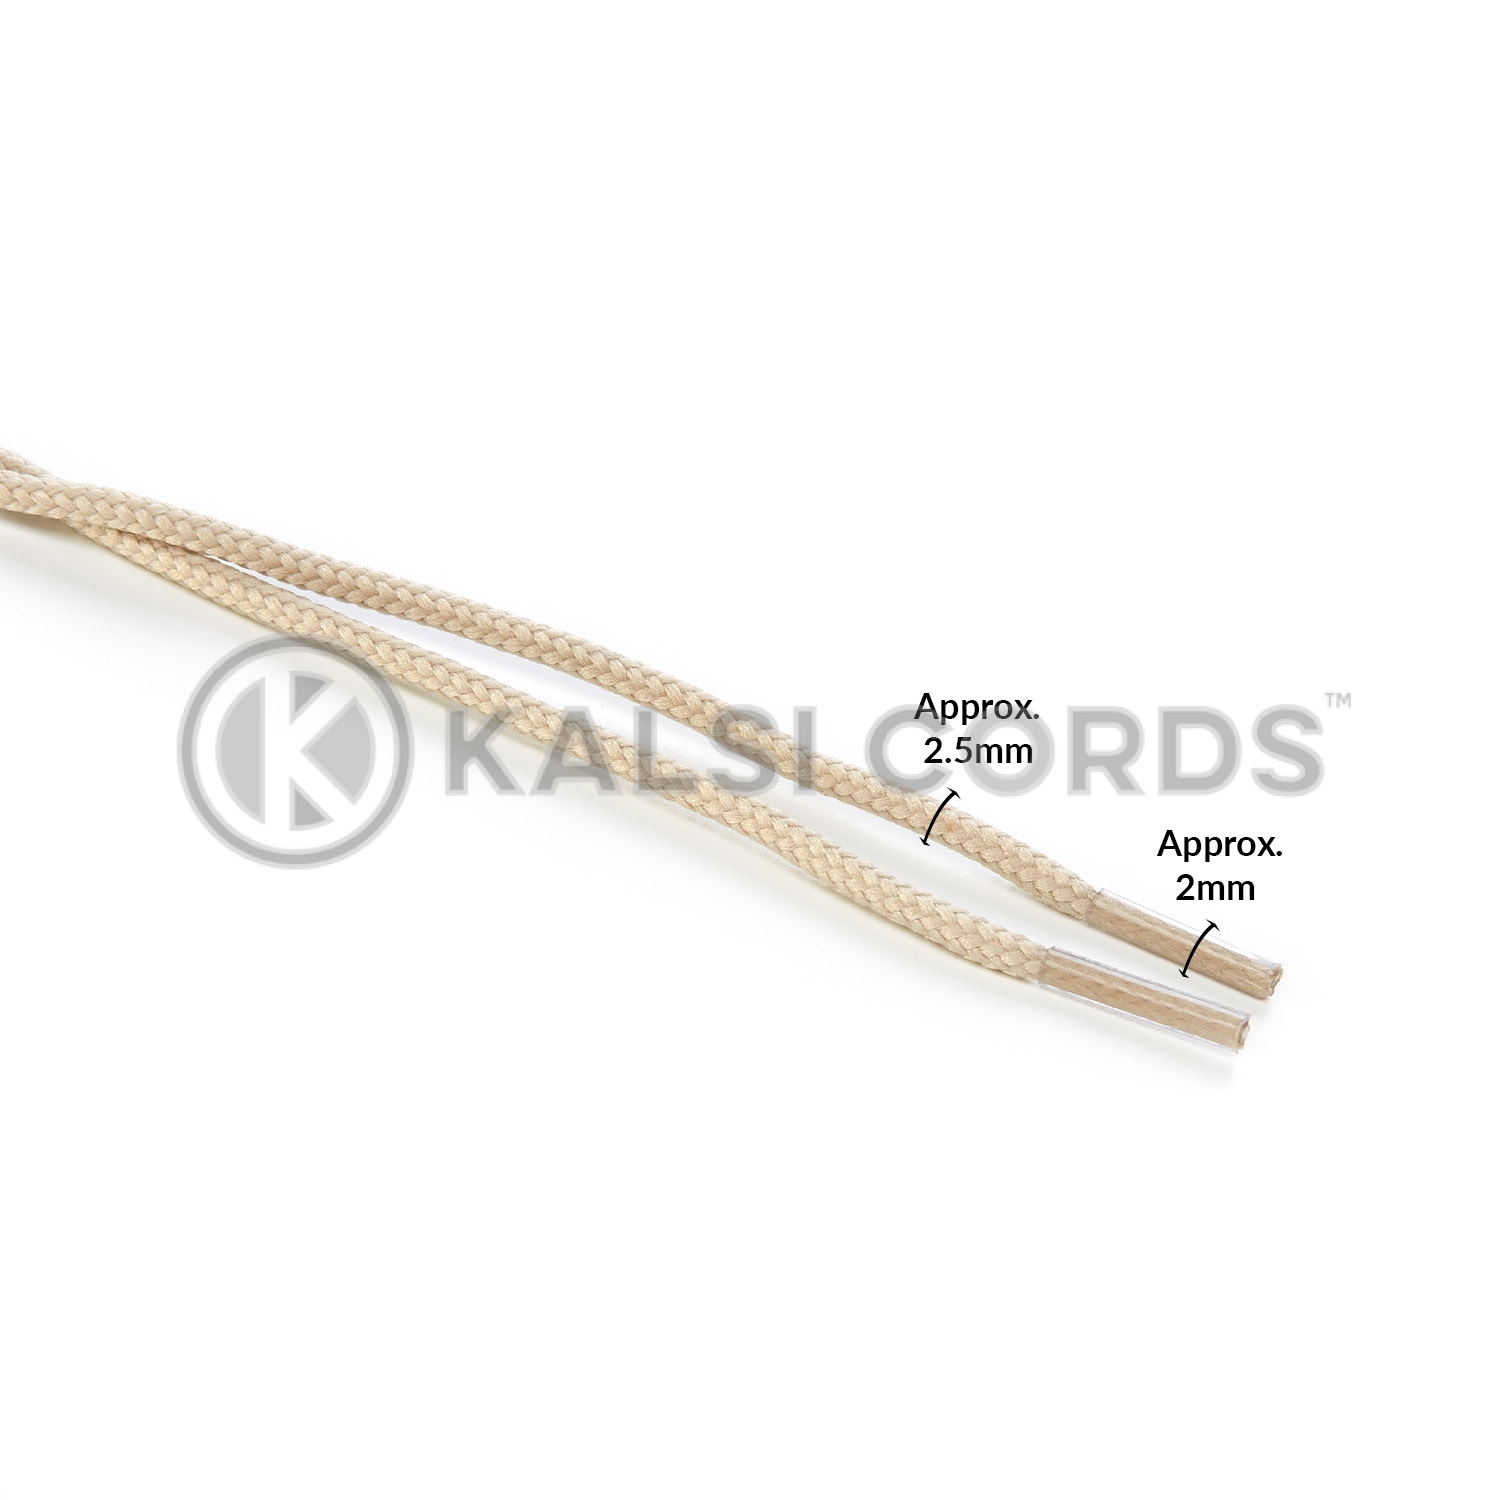 T460 2mm Thin Fine Round Cord Shoe Laces Cream PG932 Kids Trainers Adults Brogue Formal Boots Kalsi Cords